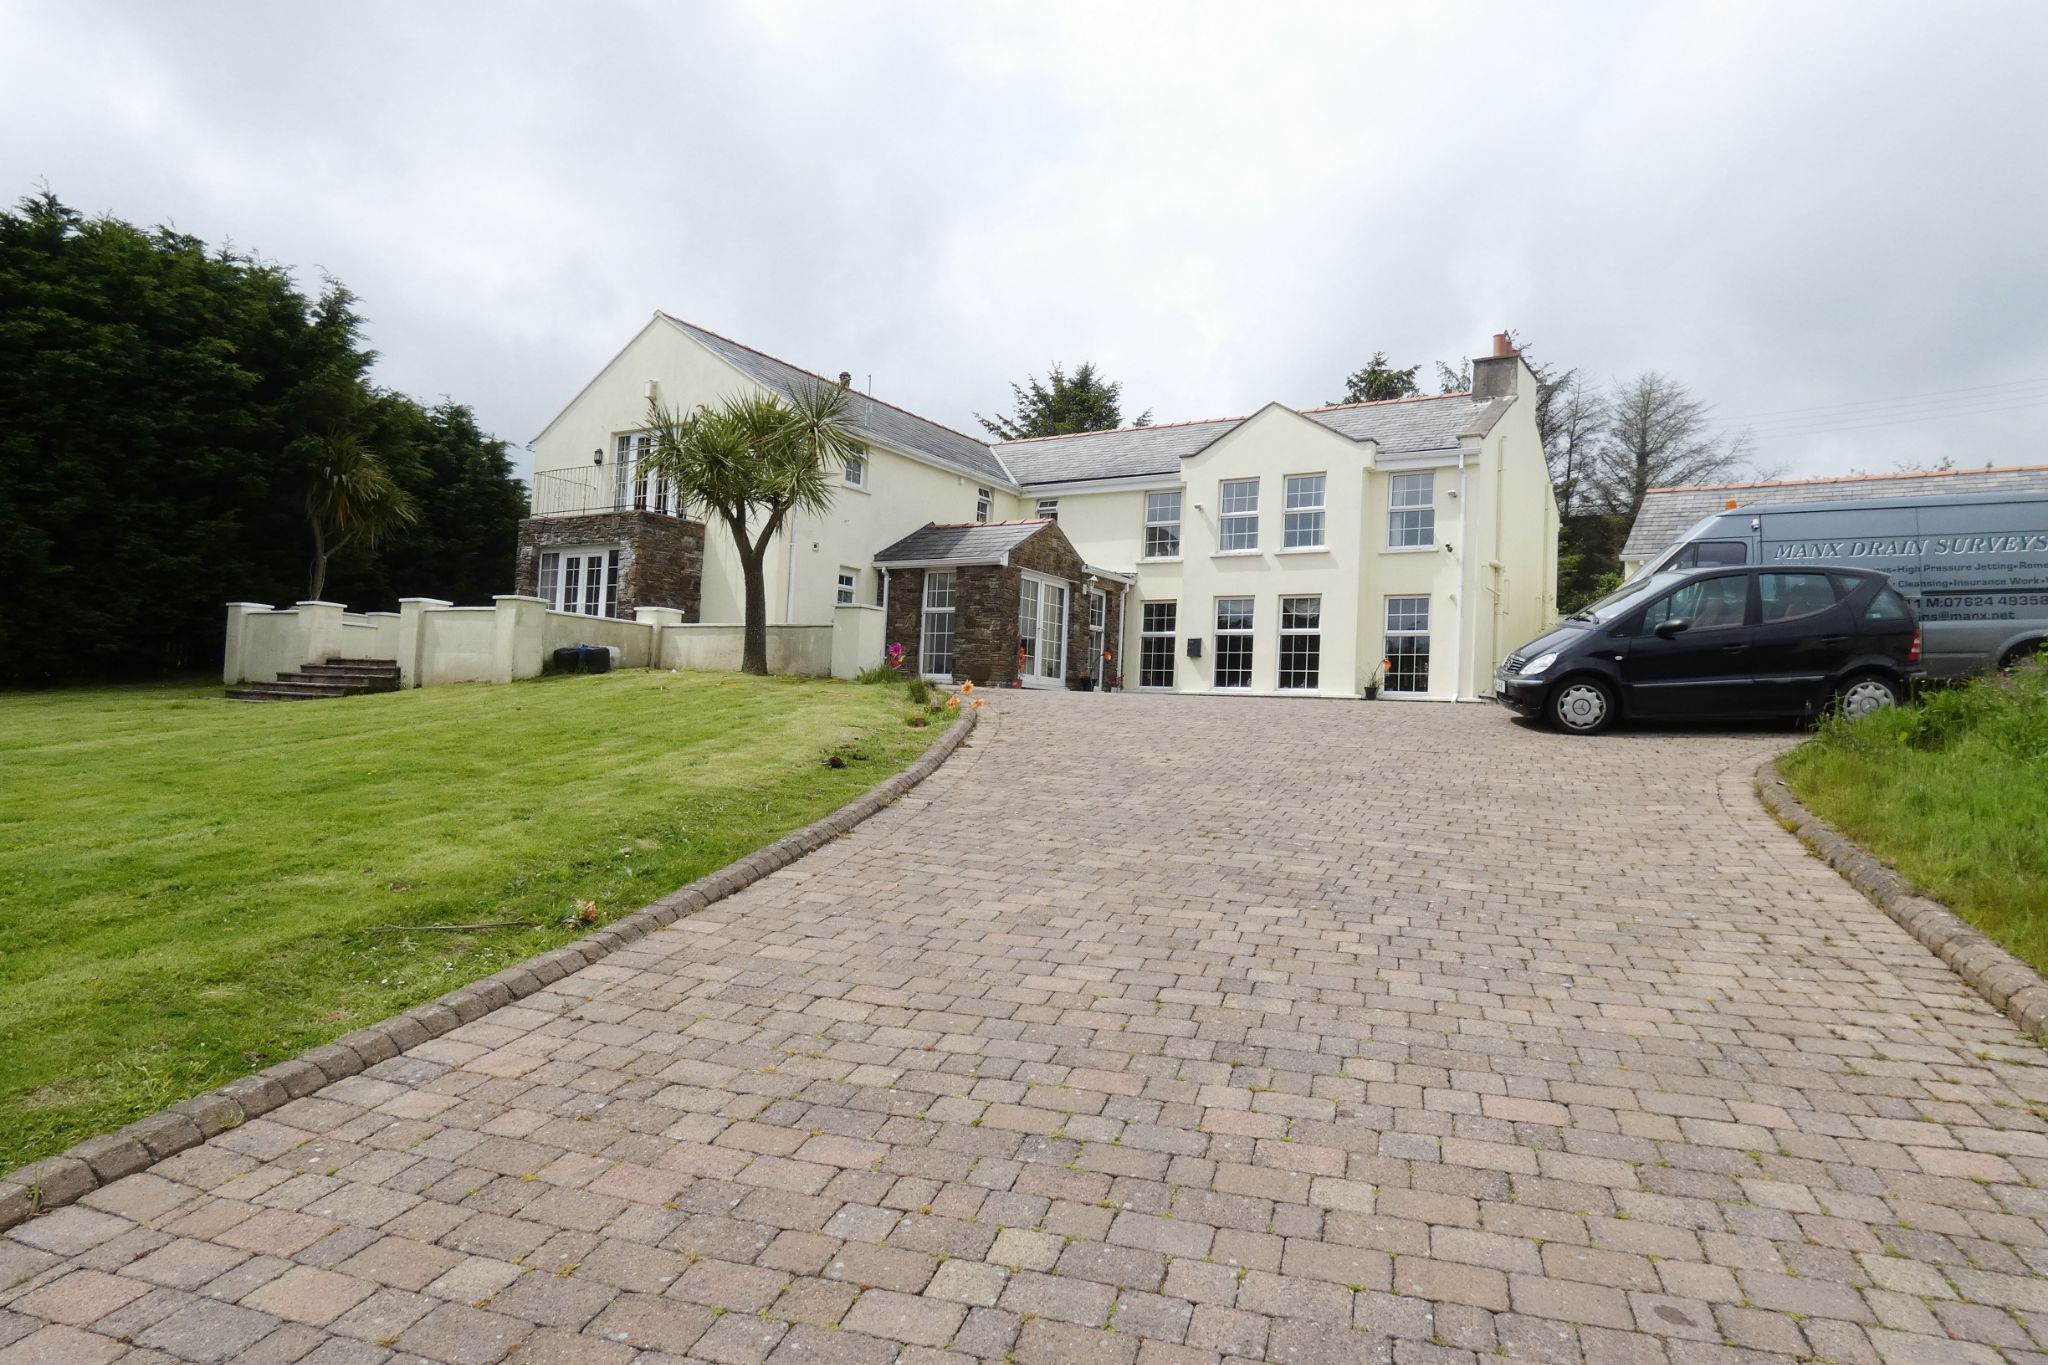 7 bedroom detached house For Sale in Laxey - Photograph 1